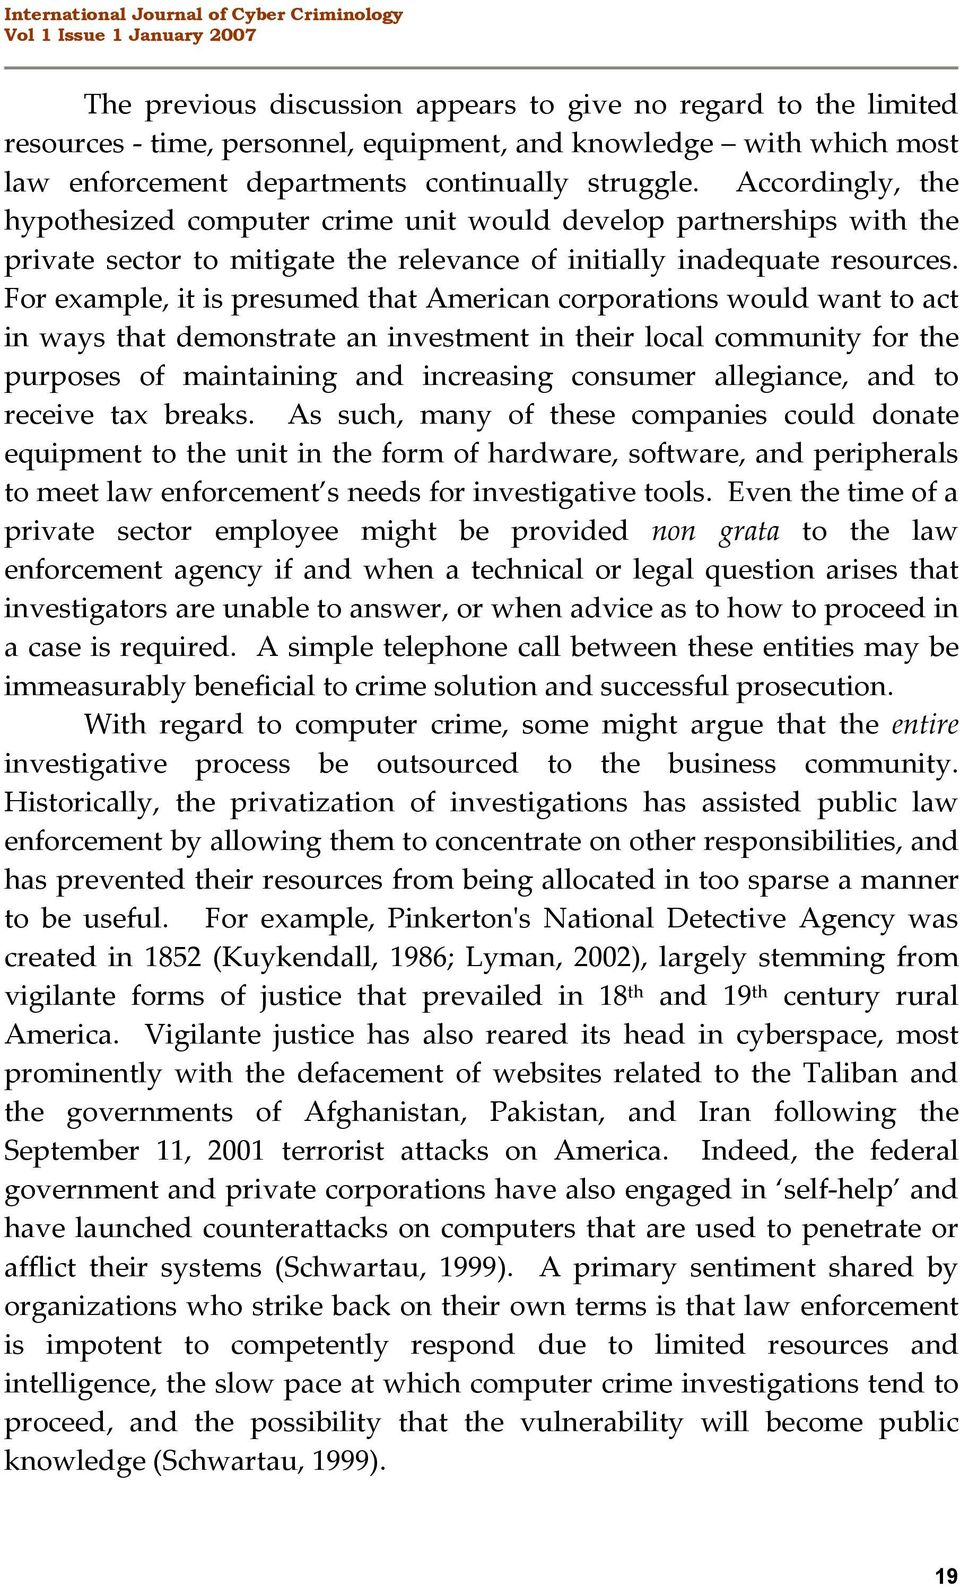 Accordingly, the hypothesized computer crime unit would develop partnerships with the private sector to mitigate the relevance of initially inadequate resources.